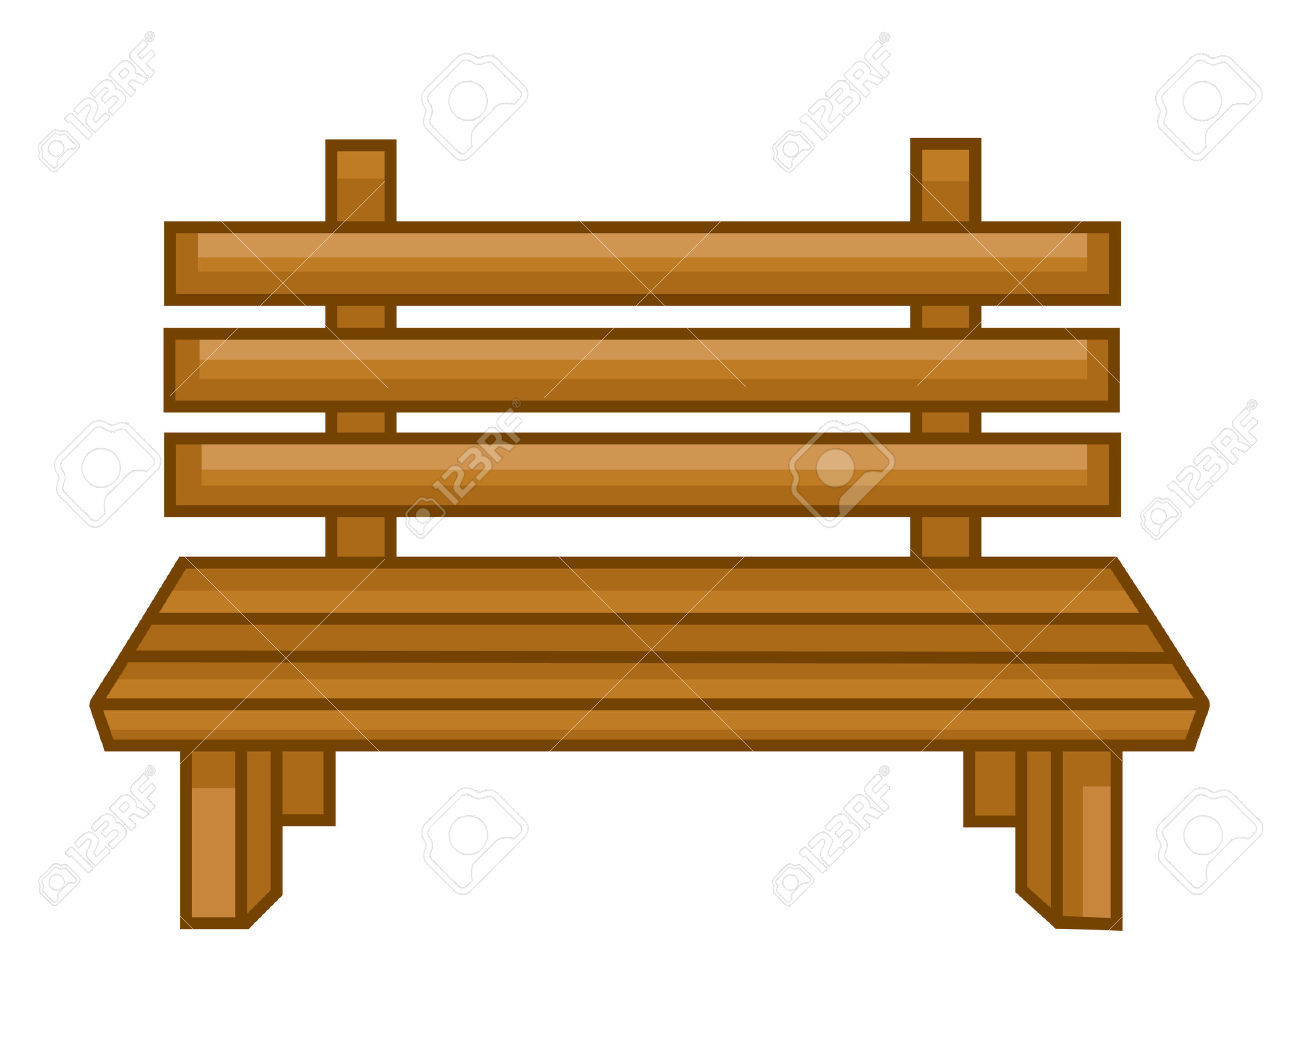 Wooden bench clipart clipground